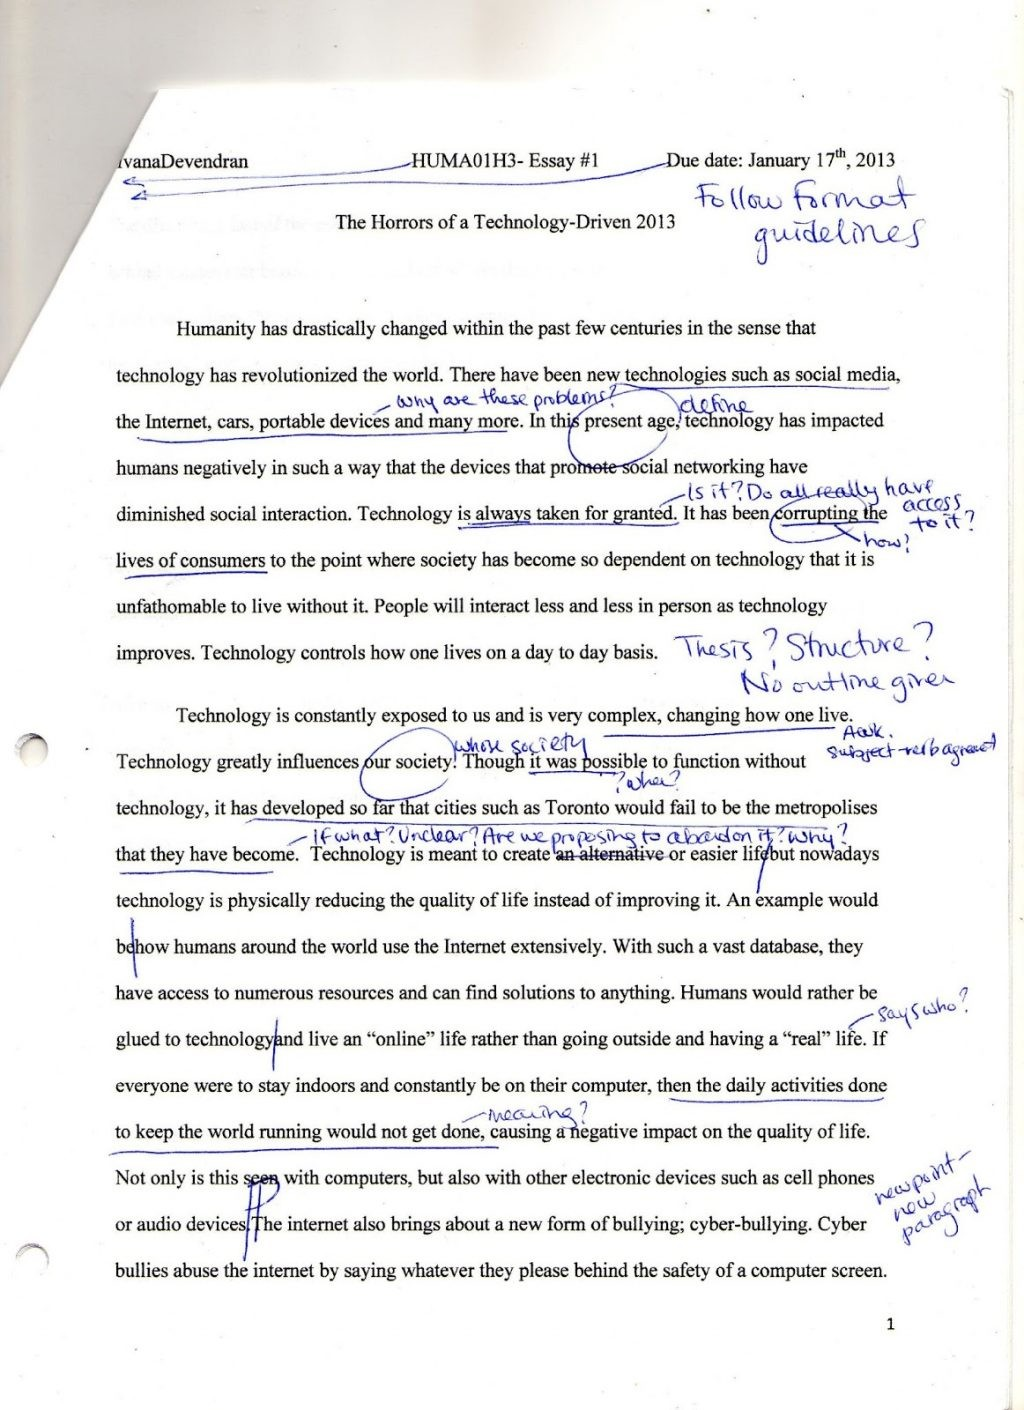 005 Essay Topics Music Img008 What Should You Avoid In Writingearch Paper Humanities Appreciation Questions Classical History Persuasive20 1024x1410 Persuasive About Awful Research Writing Large